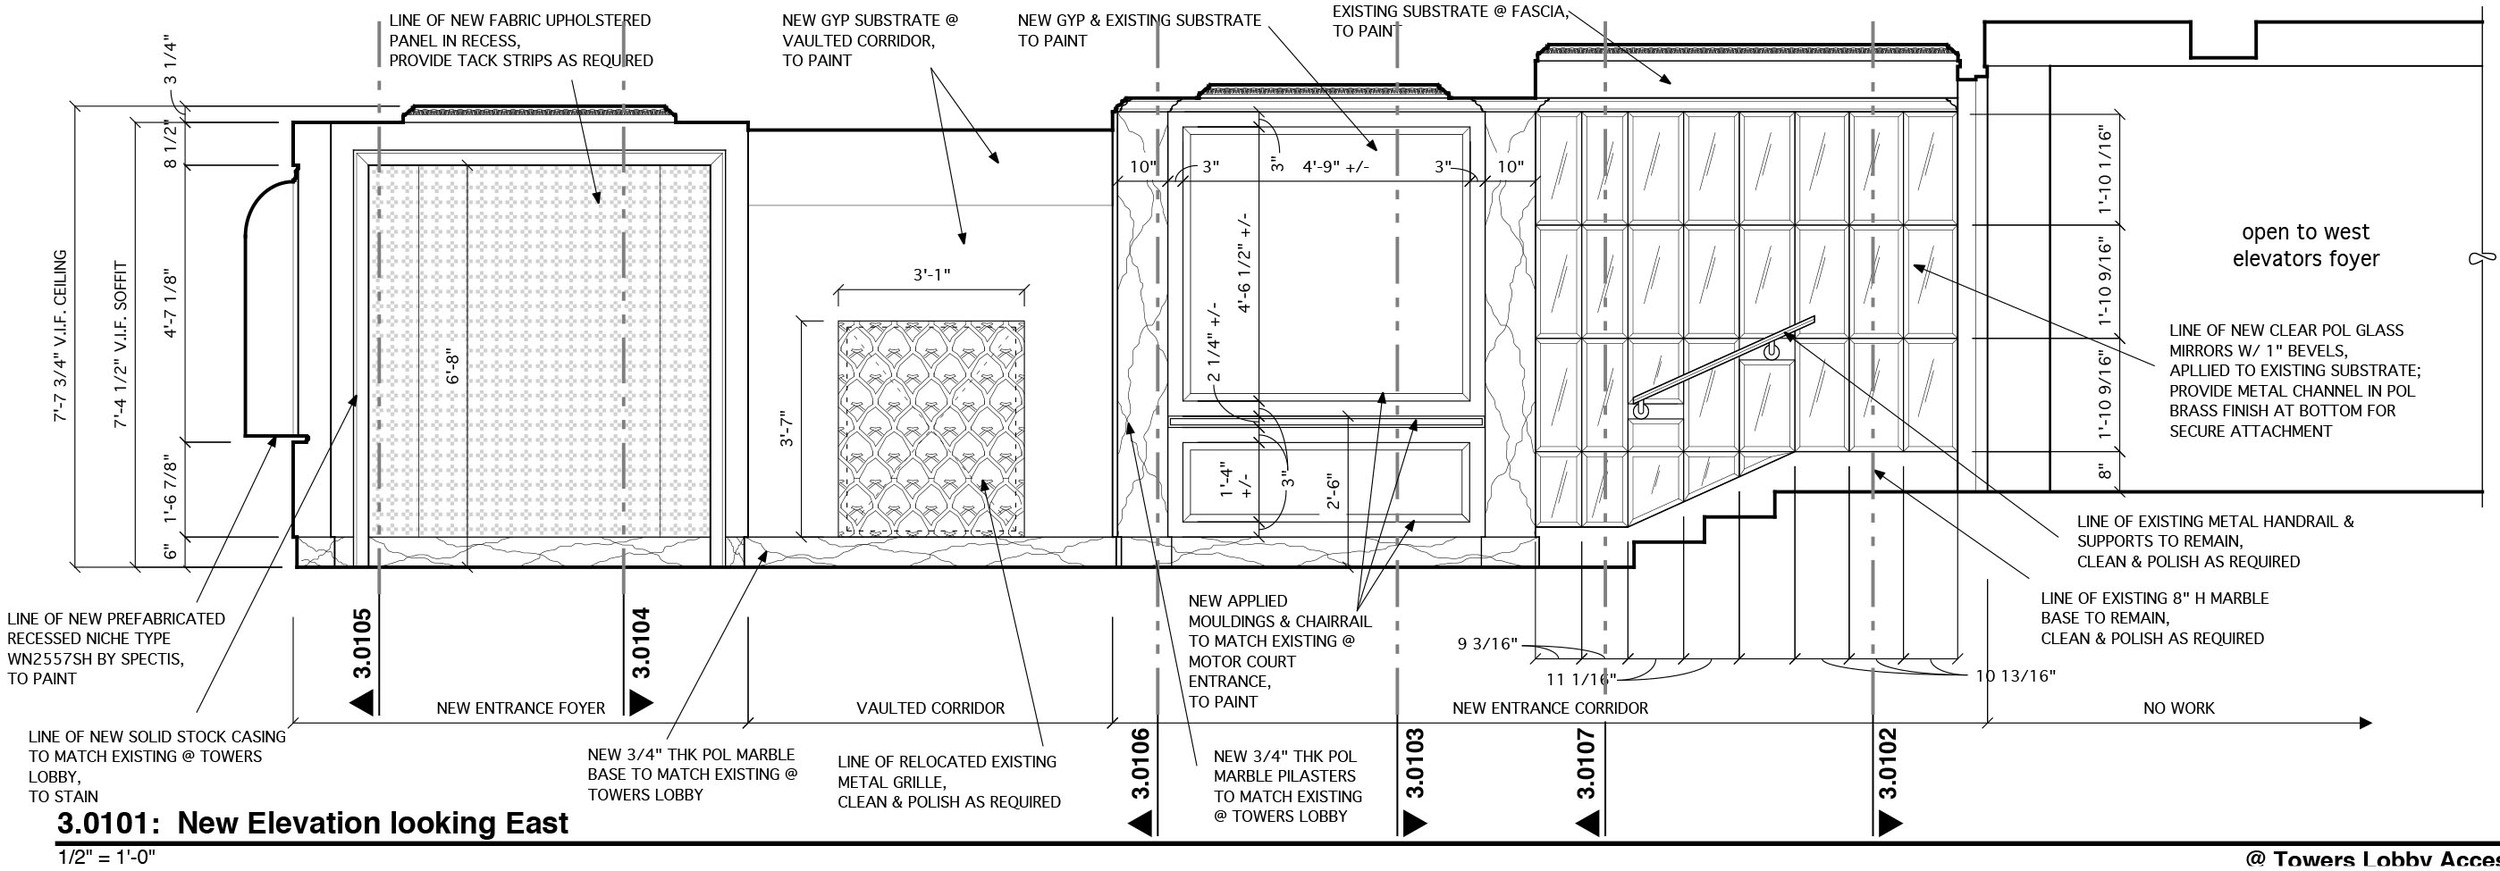 design plans (courtesy of Kenneth E. Hurd & Associates)